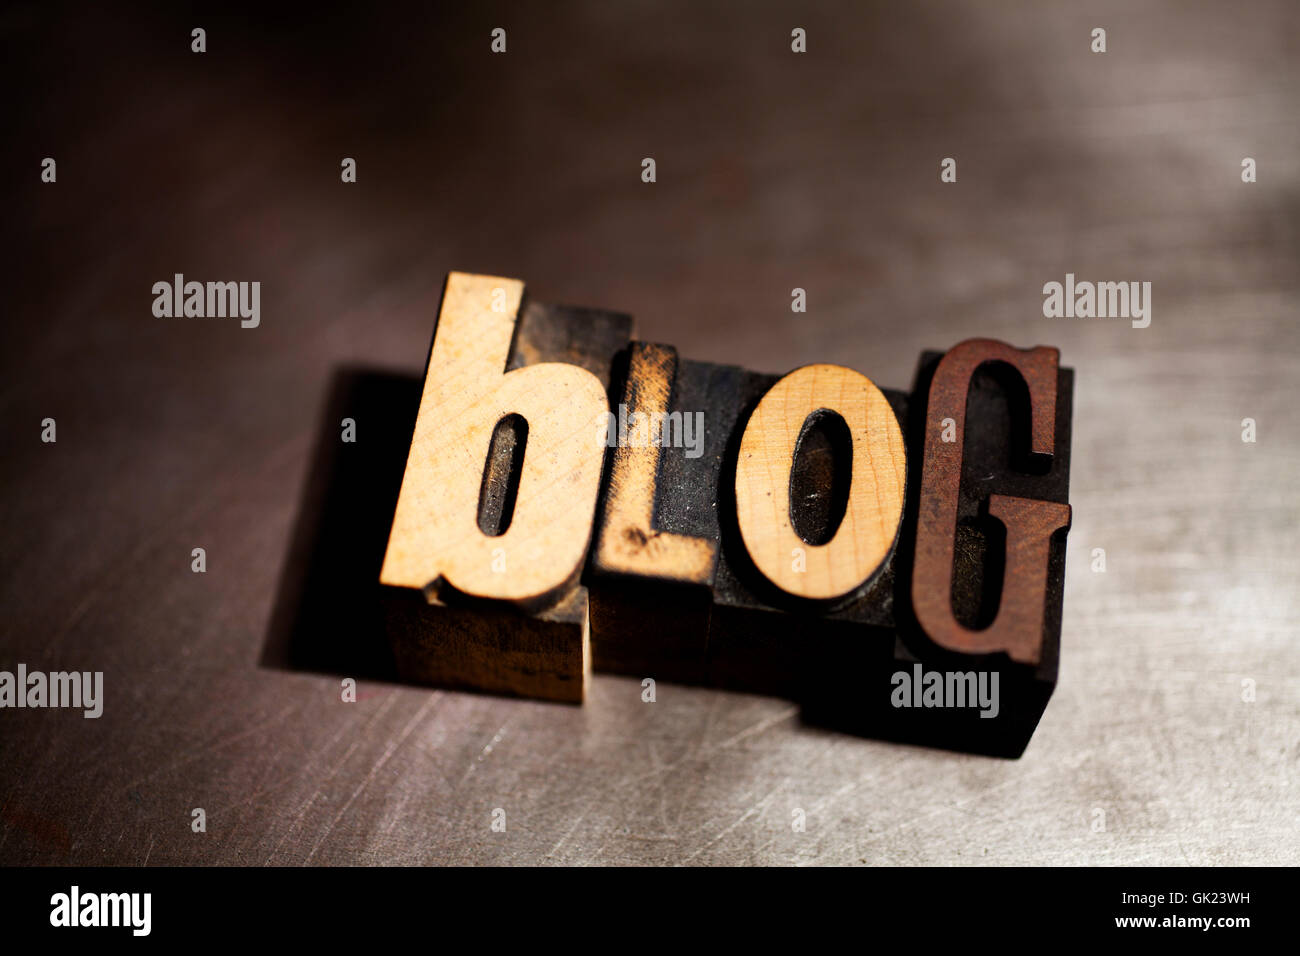 blog in wood type - Stock Image